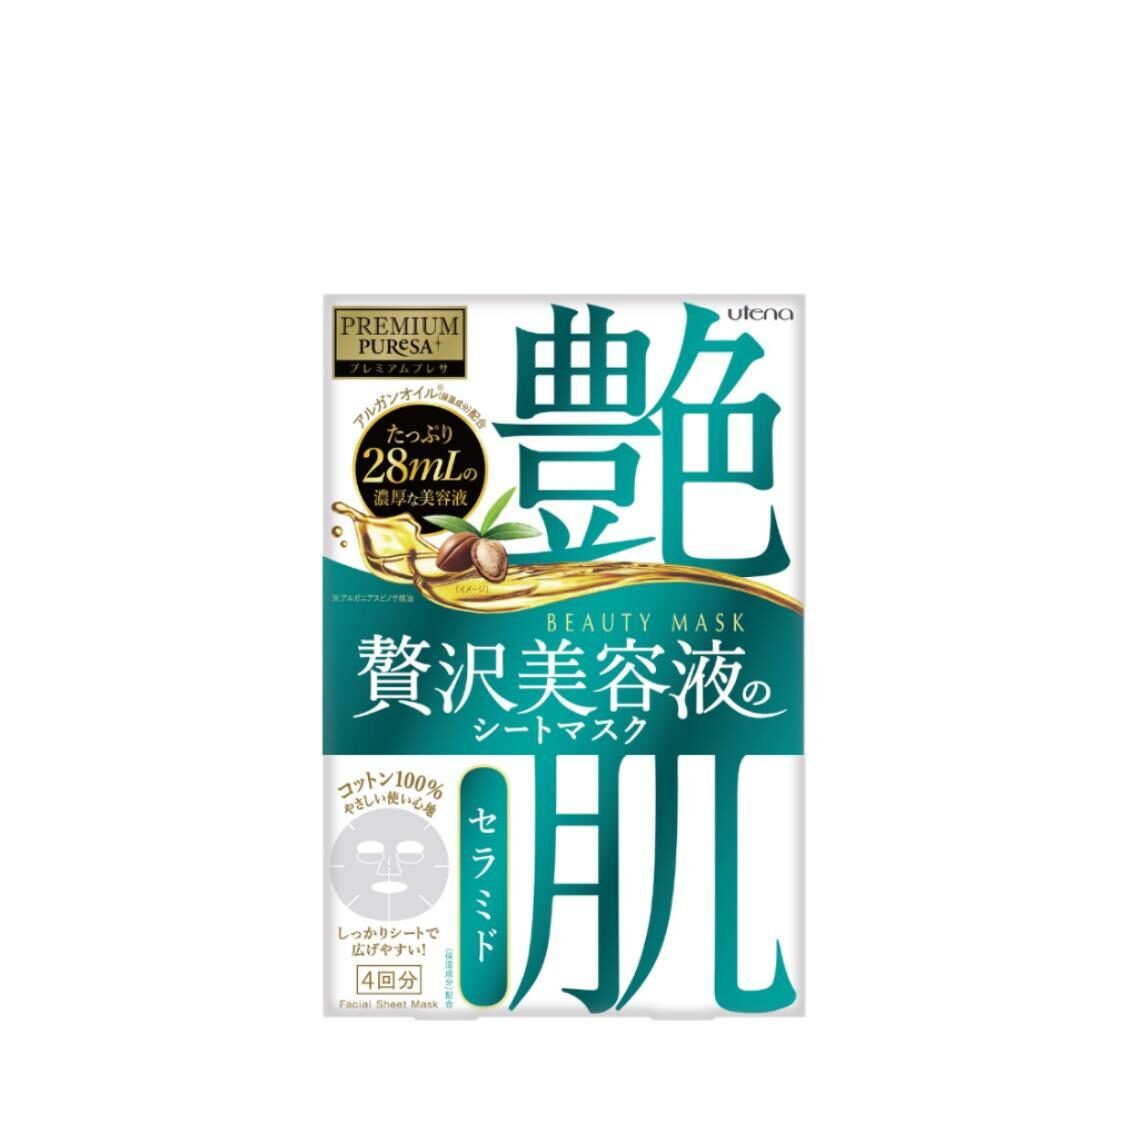 Premium Puresa Beauty Mask CE